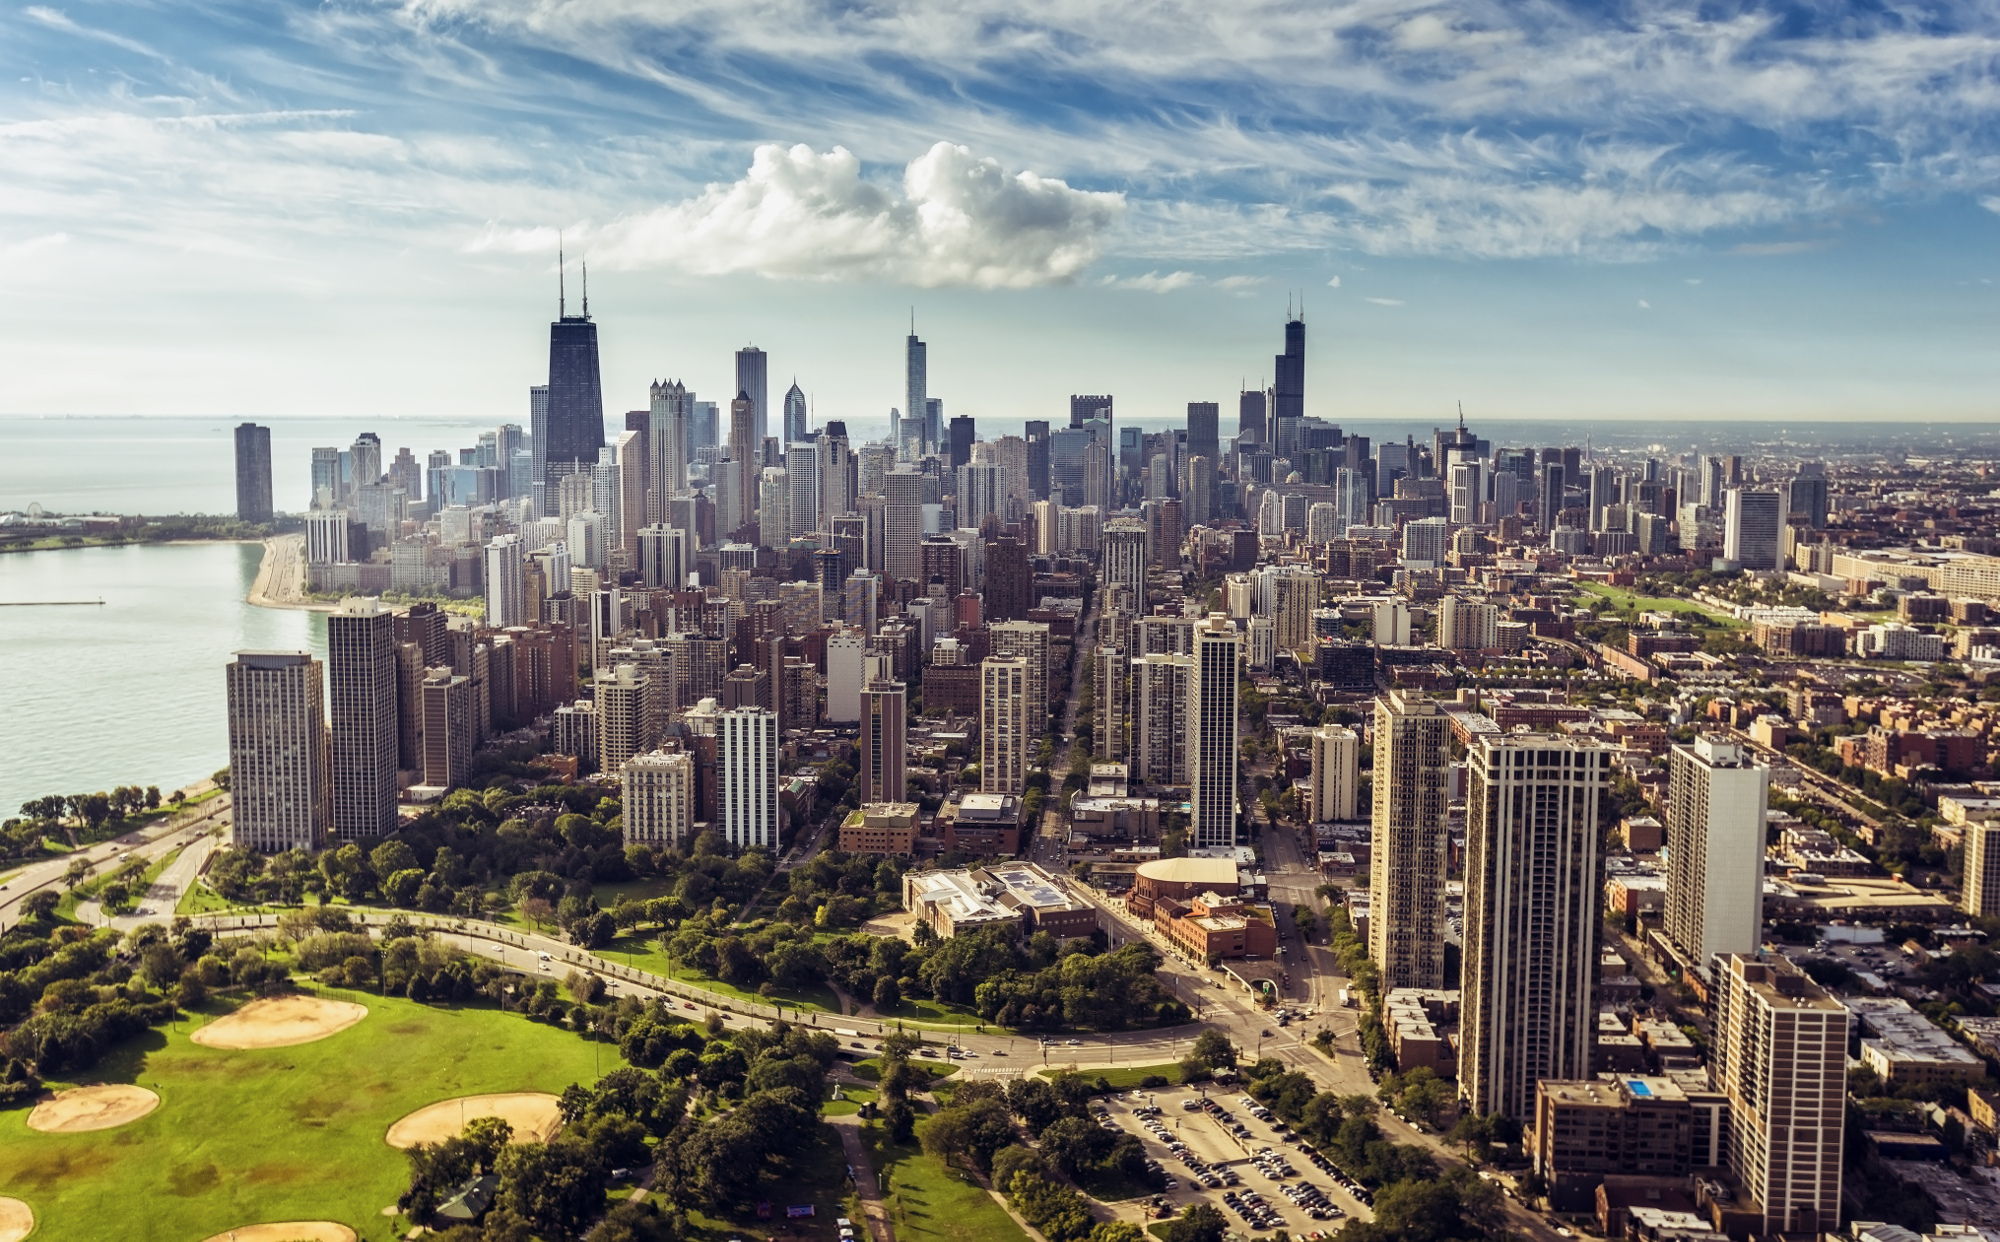 Chicago topped the list of best cities in the world in the 2018 Time Out City Life Index.